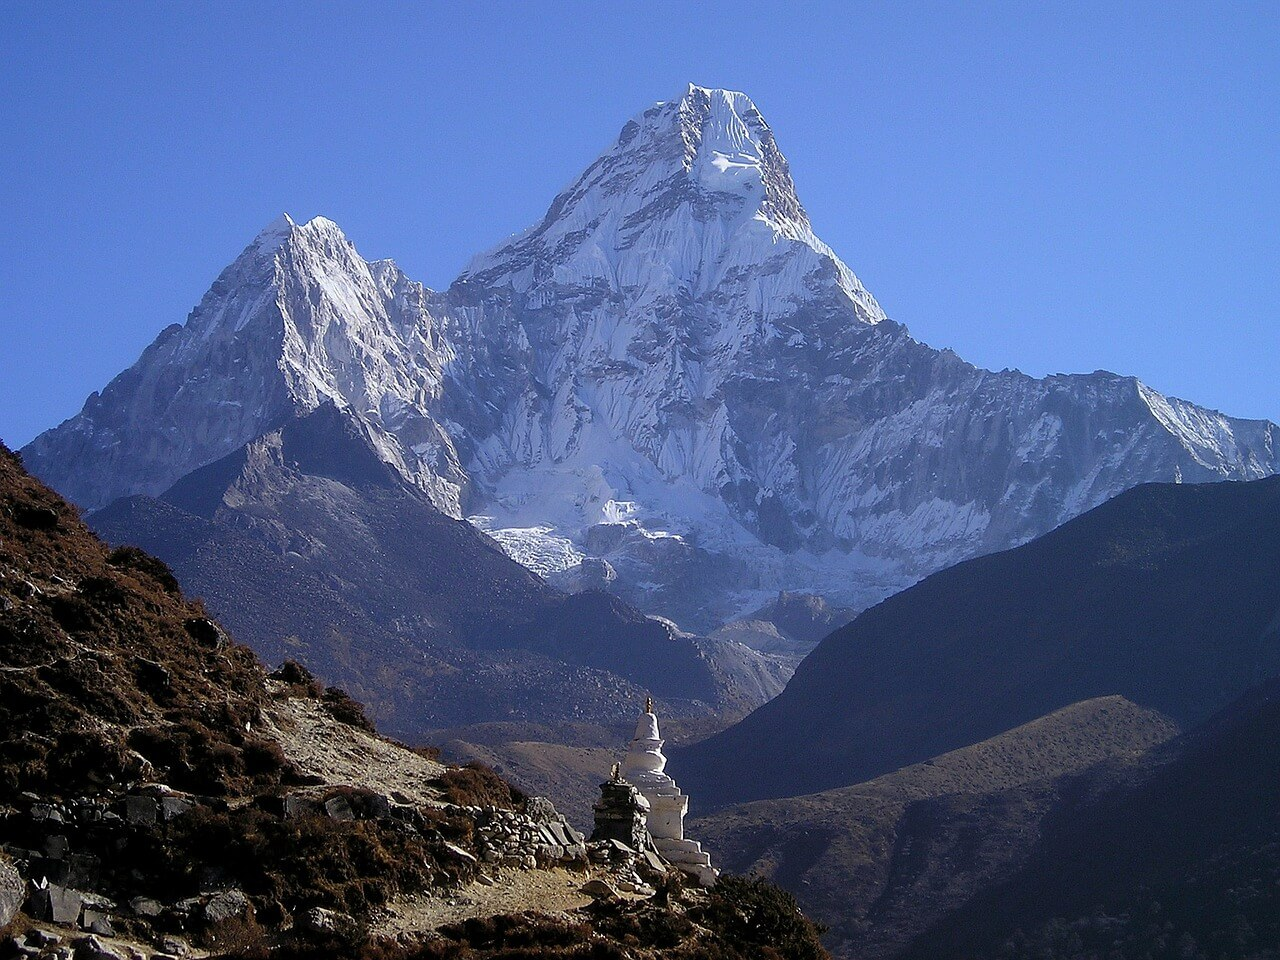 The view of Mount Everest while trekking in Nepal